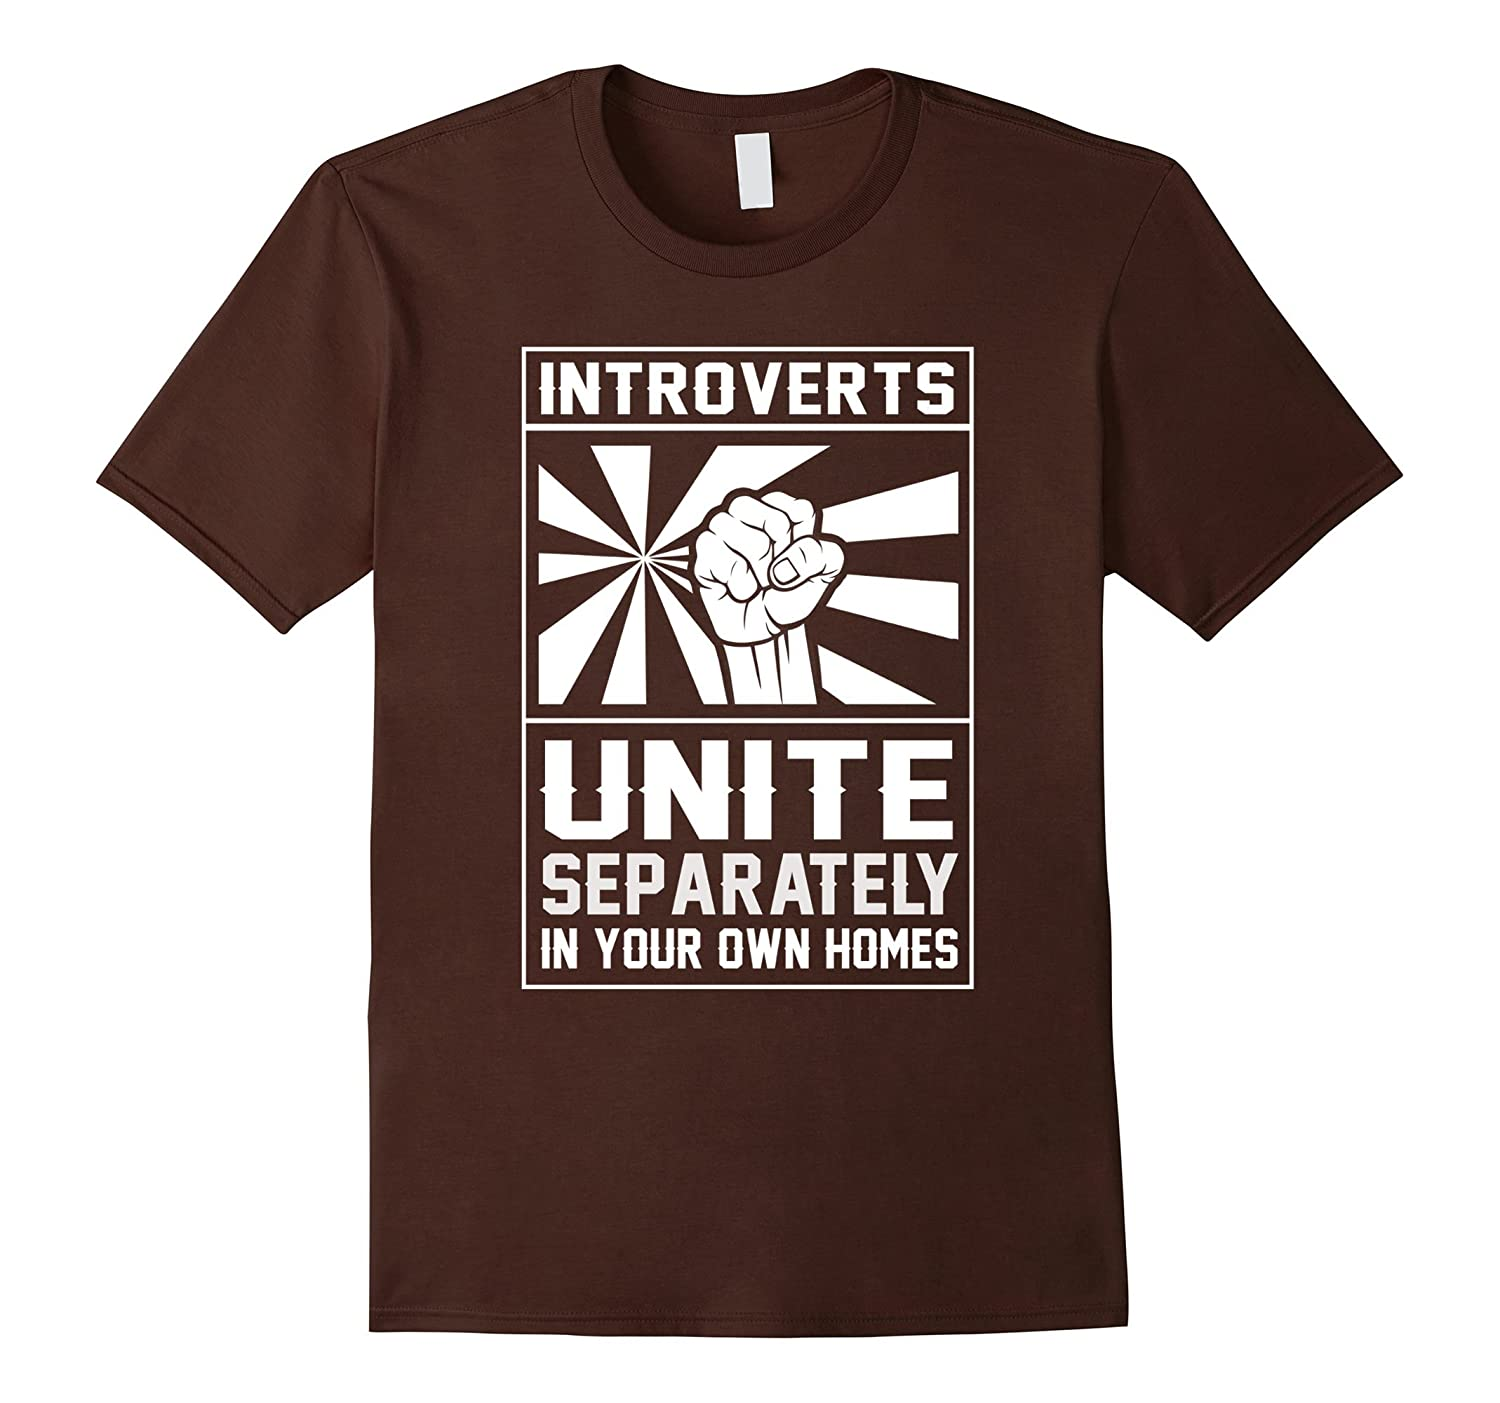 Introverts Unite Separately In Your Own Homes Shirt-TD ...